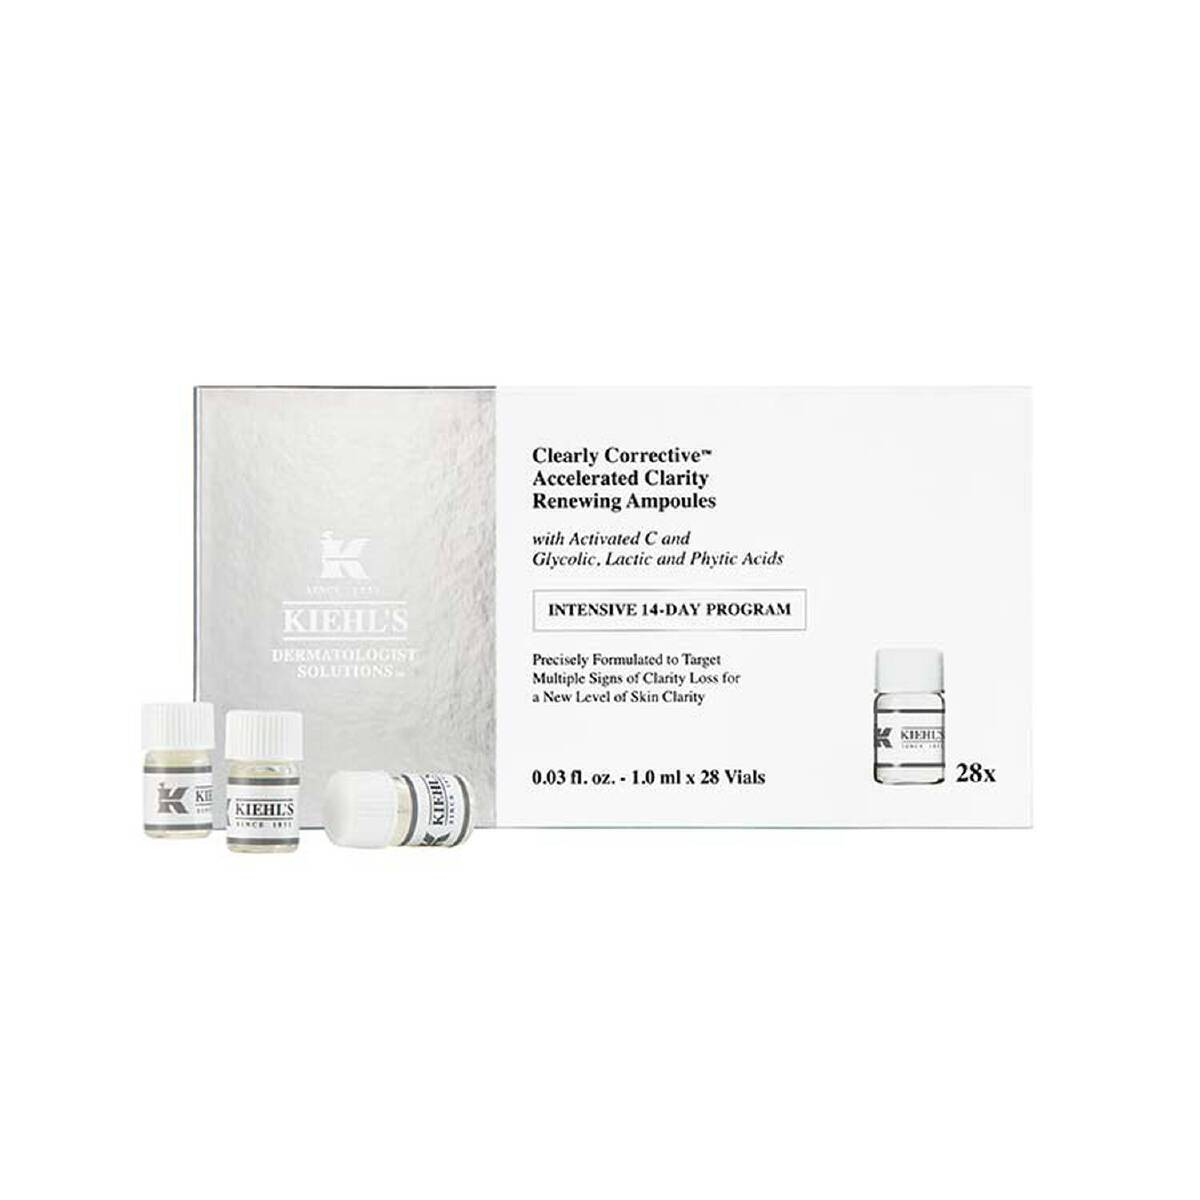 Kiehl's Clearly Corrective Accelerated Clarity Renewing Ampoules